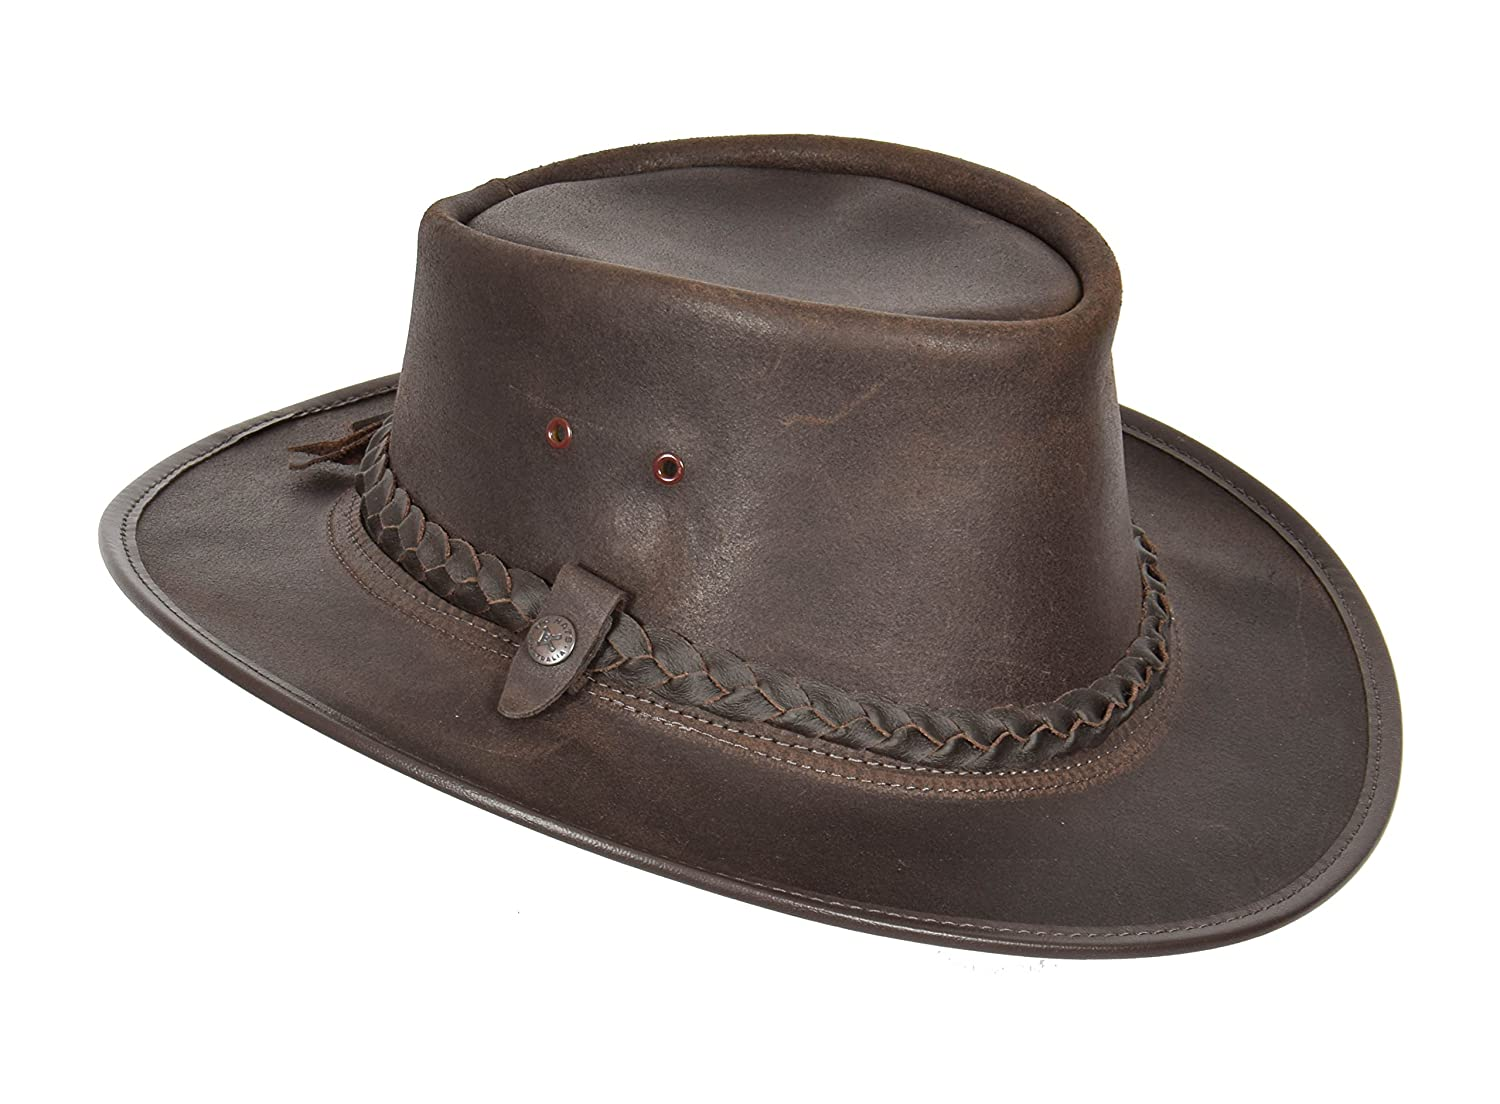 Original Australian Bac Pac Traveller Cowboy BC Hat Real Leather Brown